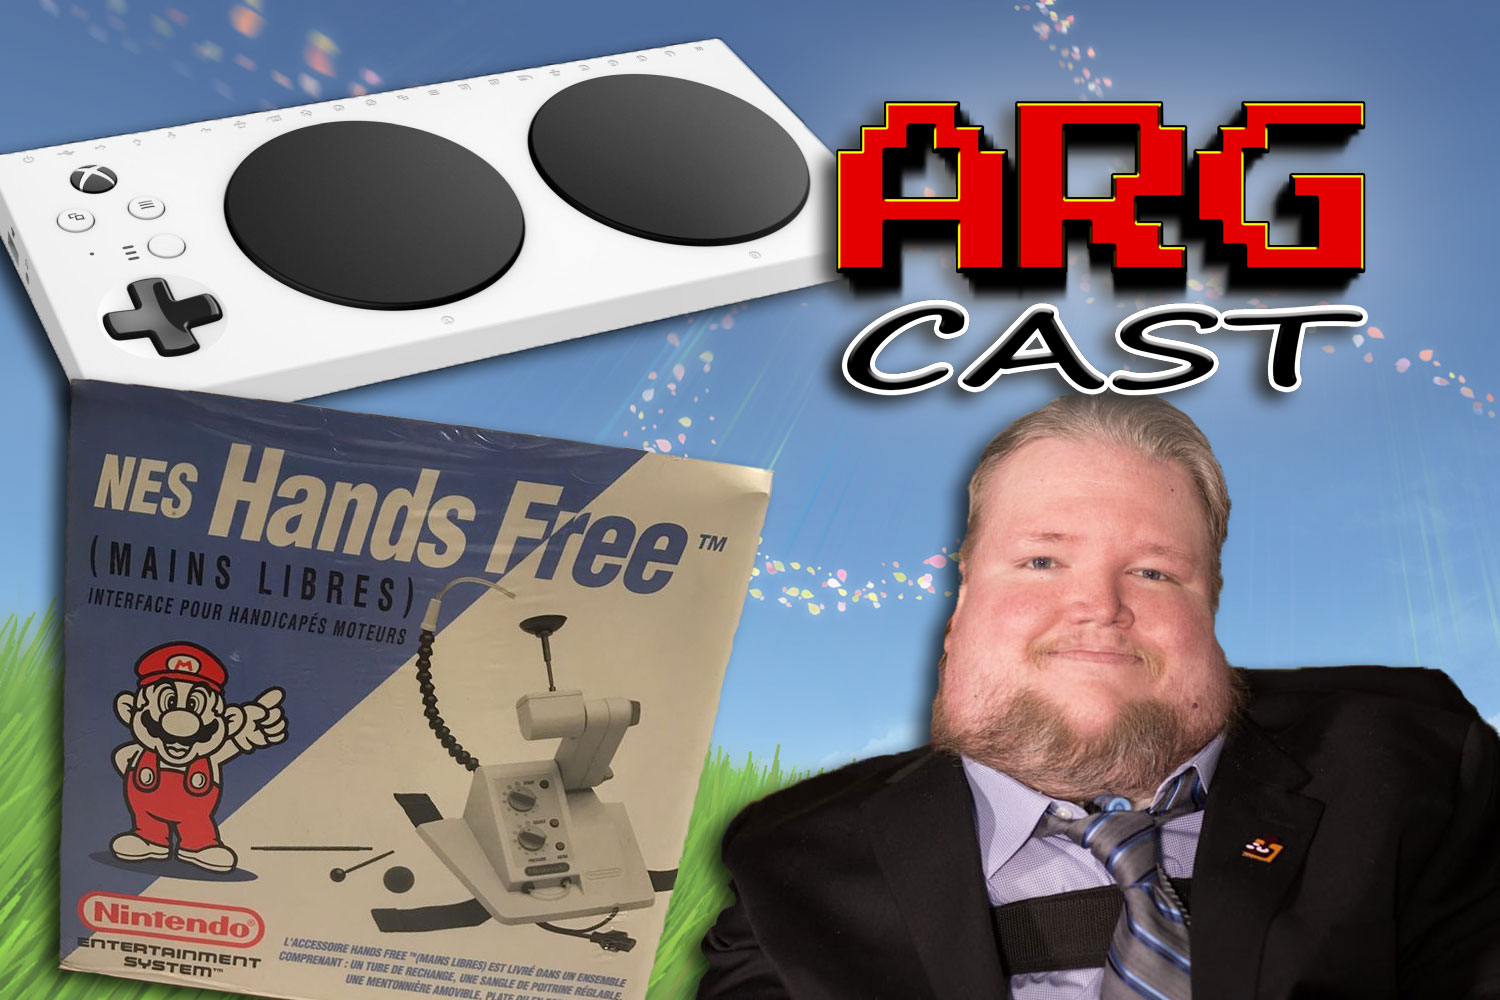 ARGcast #149: Accessibility in Gaming with Steven Spohn of AbleGamers